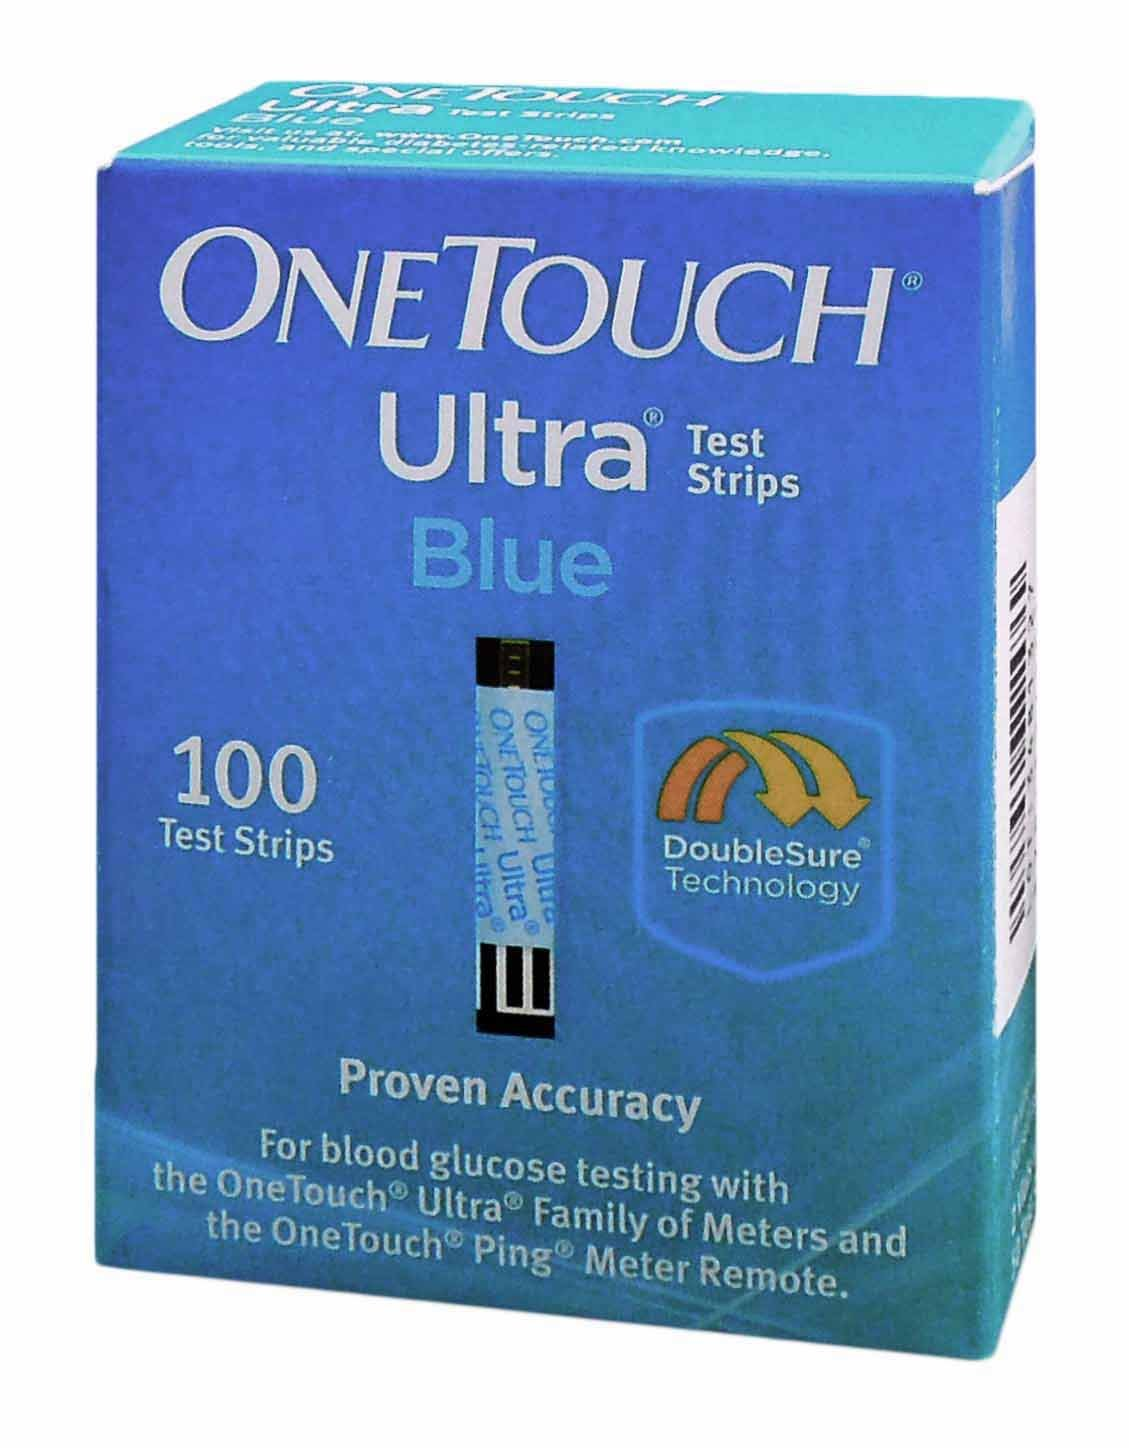 One Touch Ultra Test Strip Blue 100 ct by One Touch Ultra Blue 100 Test Strips